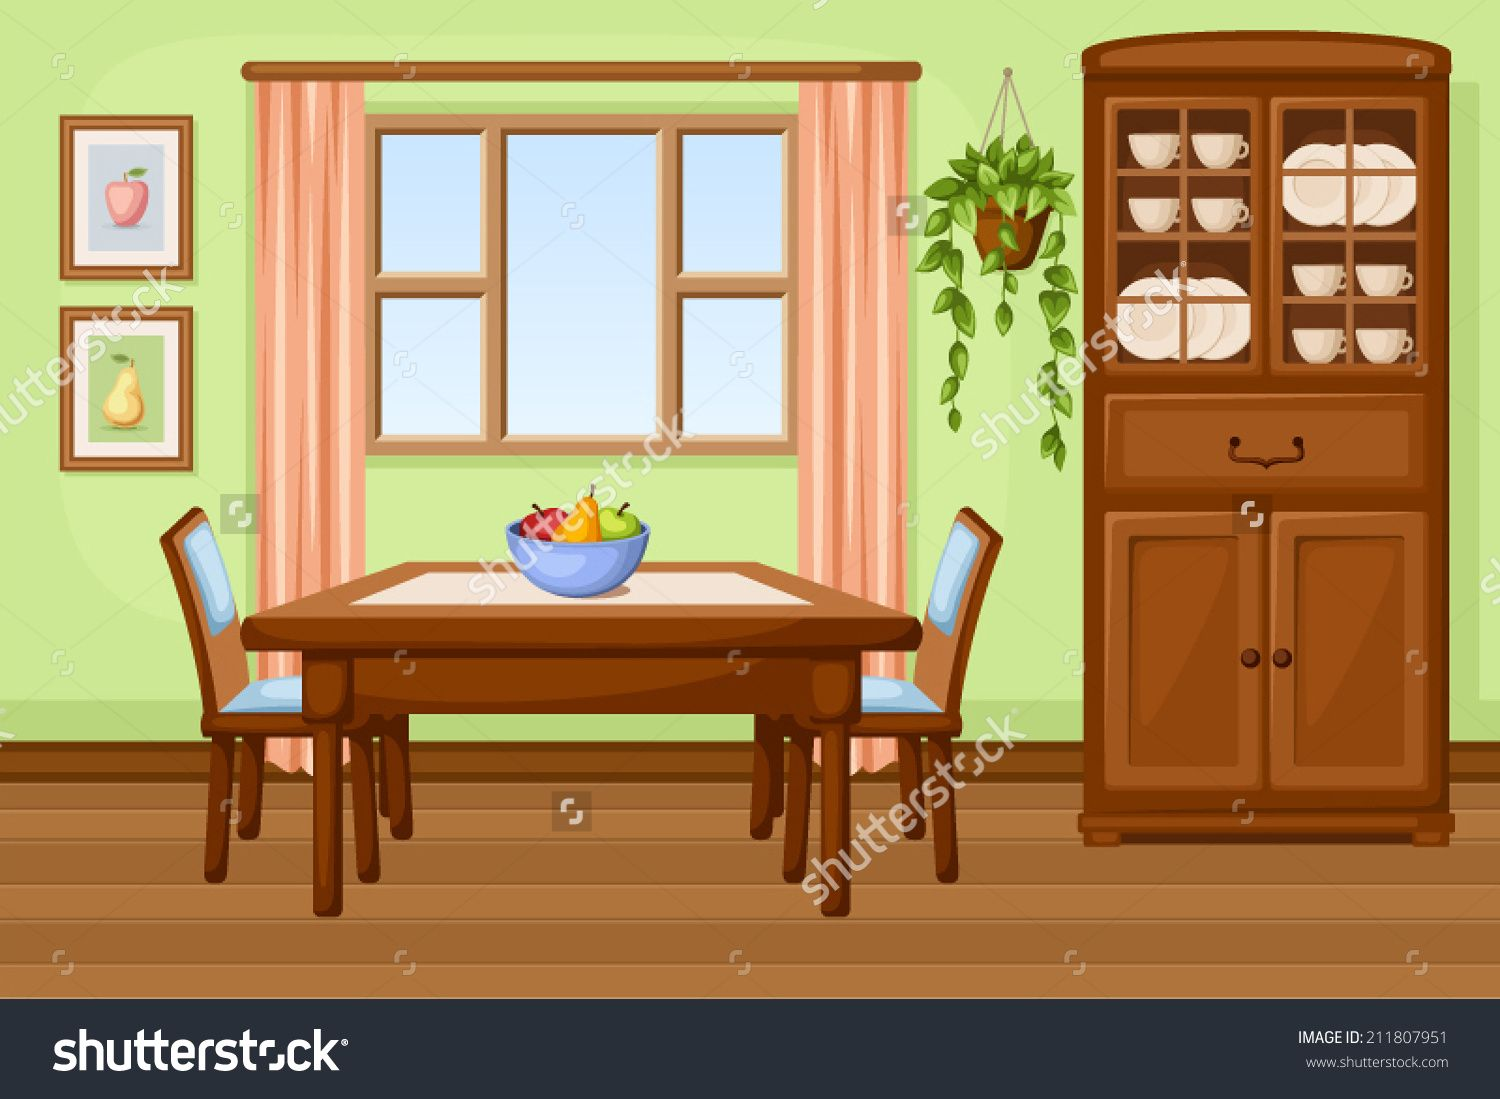 Image Result For Cartoon Dining Room